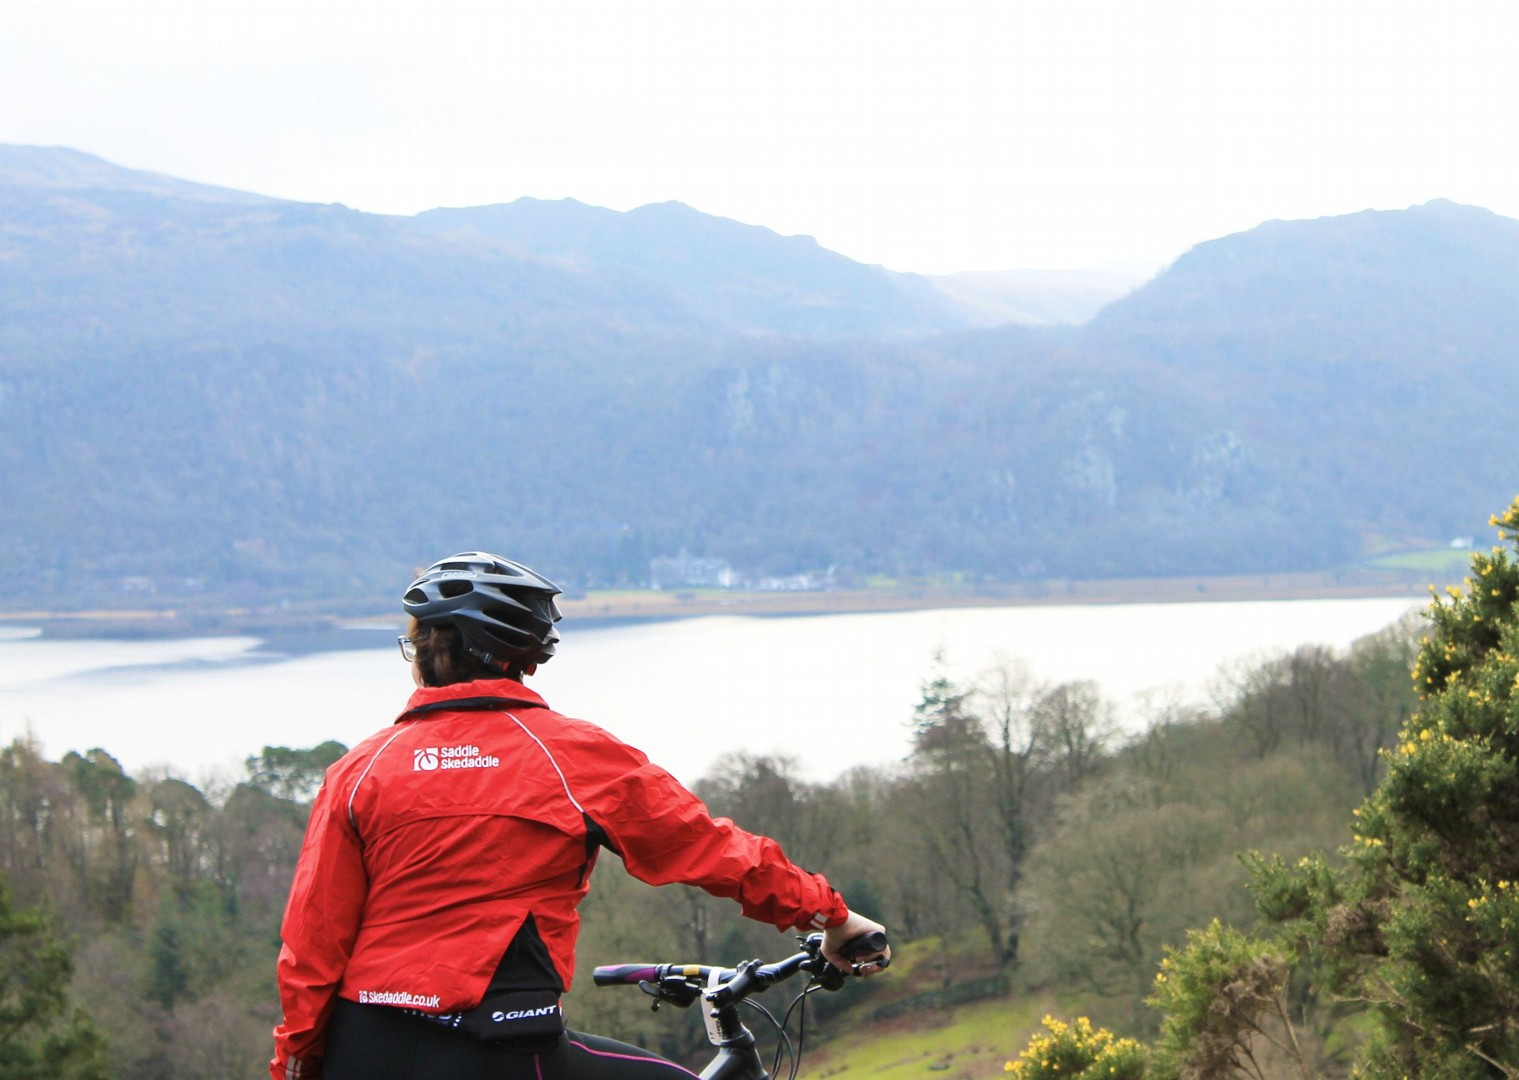 Lake District-Derwent-Water-Self-Guided-Leisure-Cycling-Holiday-2.jpg - UK - Lake District - Derwent Water - Guided Leisure Cycling Holiday - Leisure Cycling